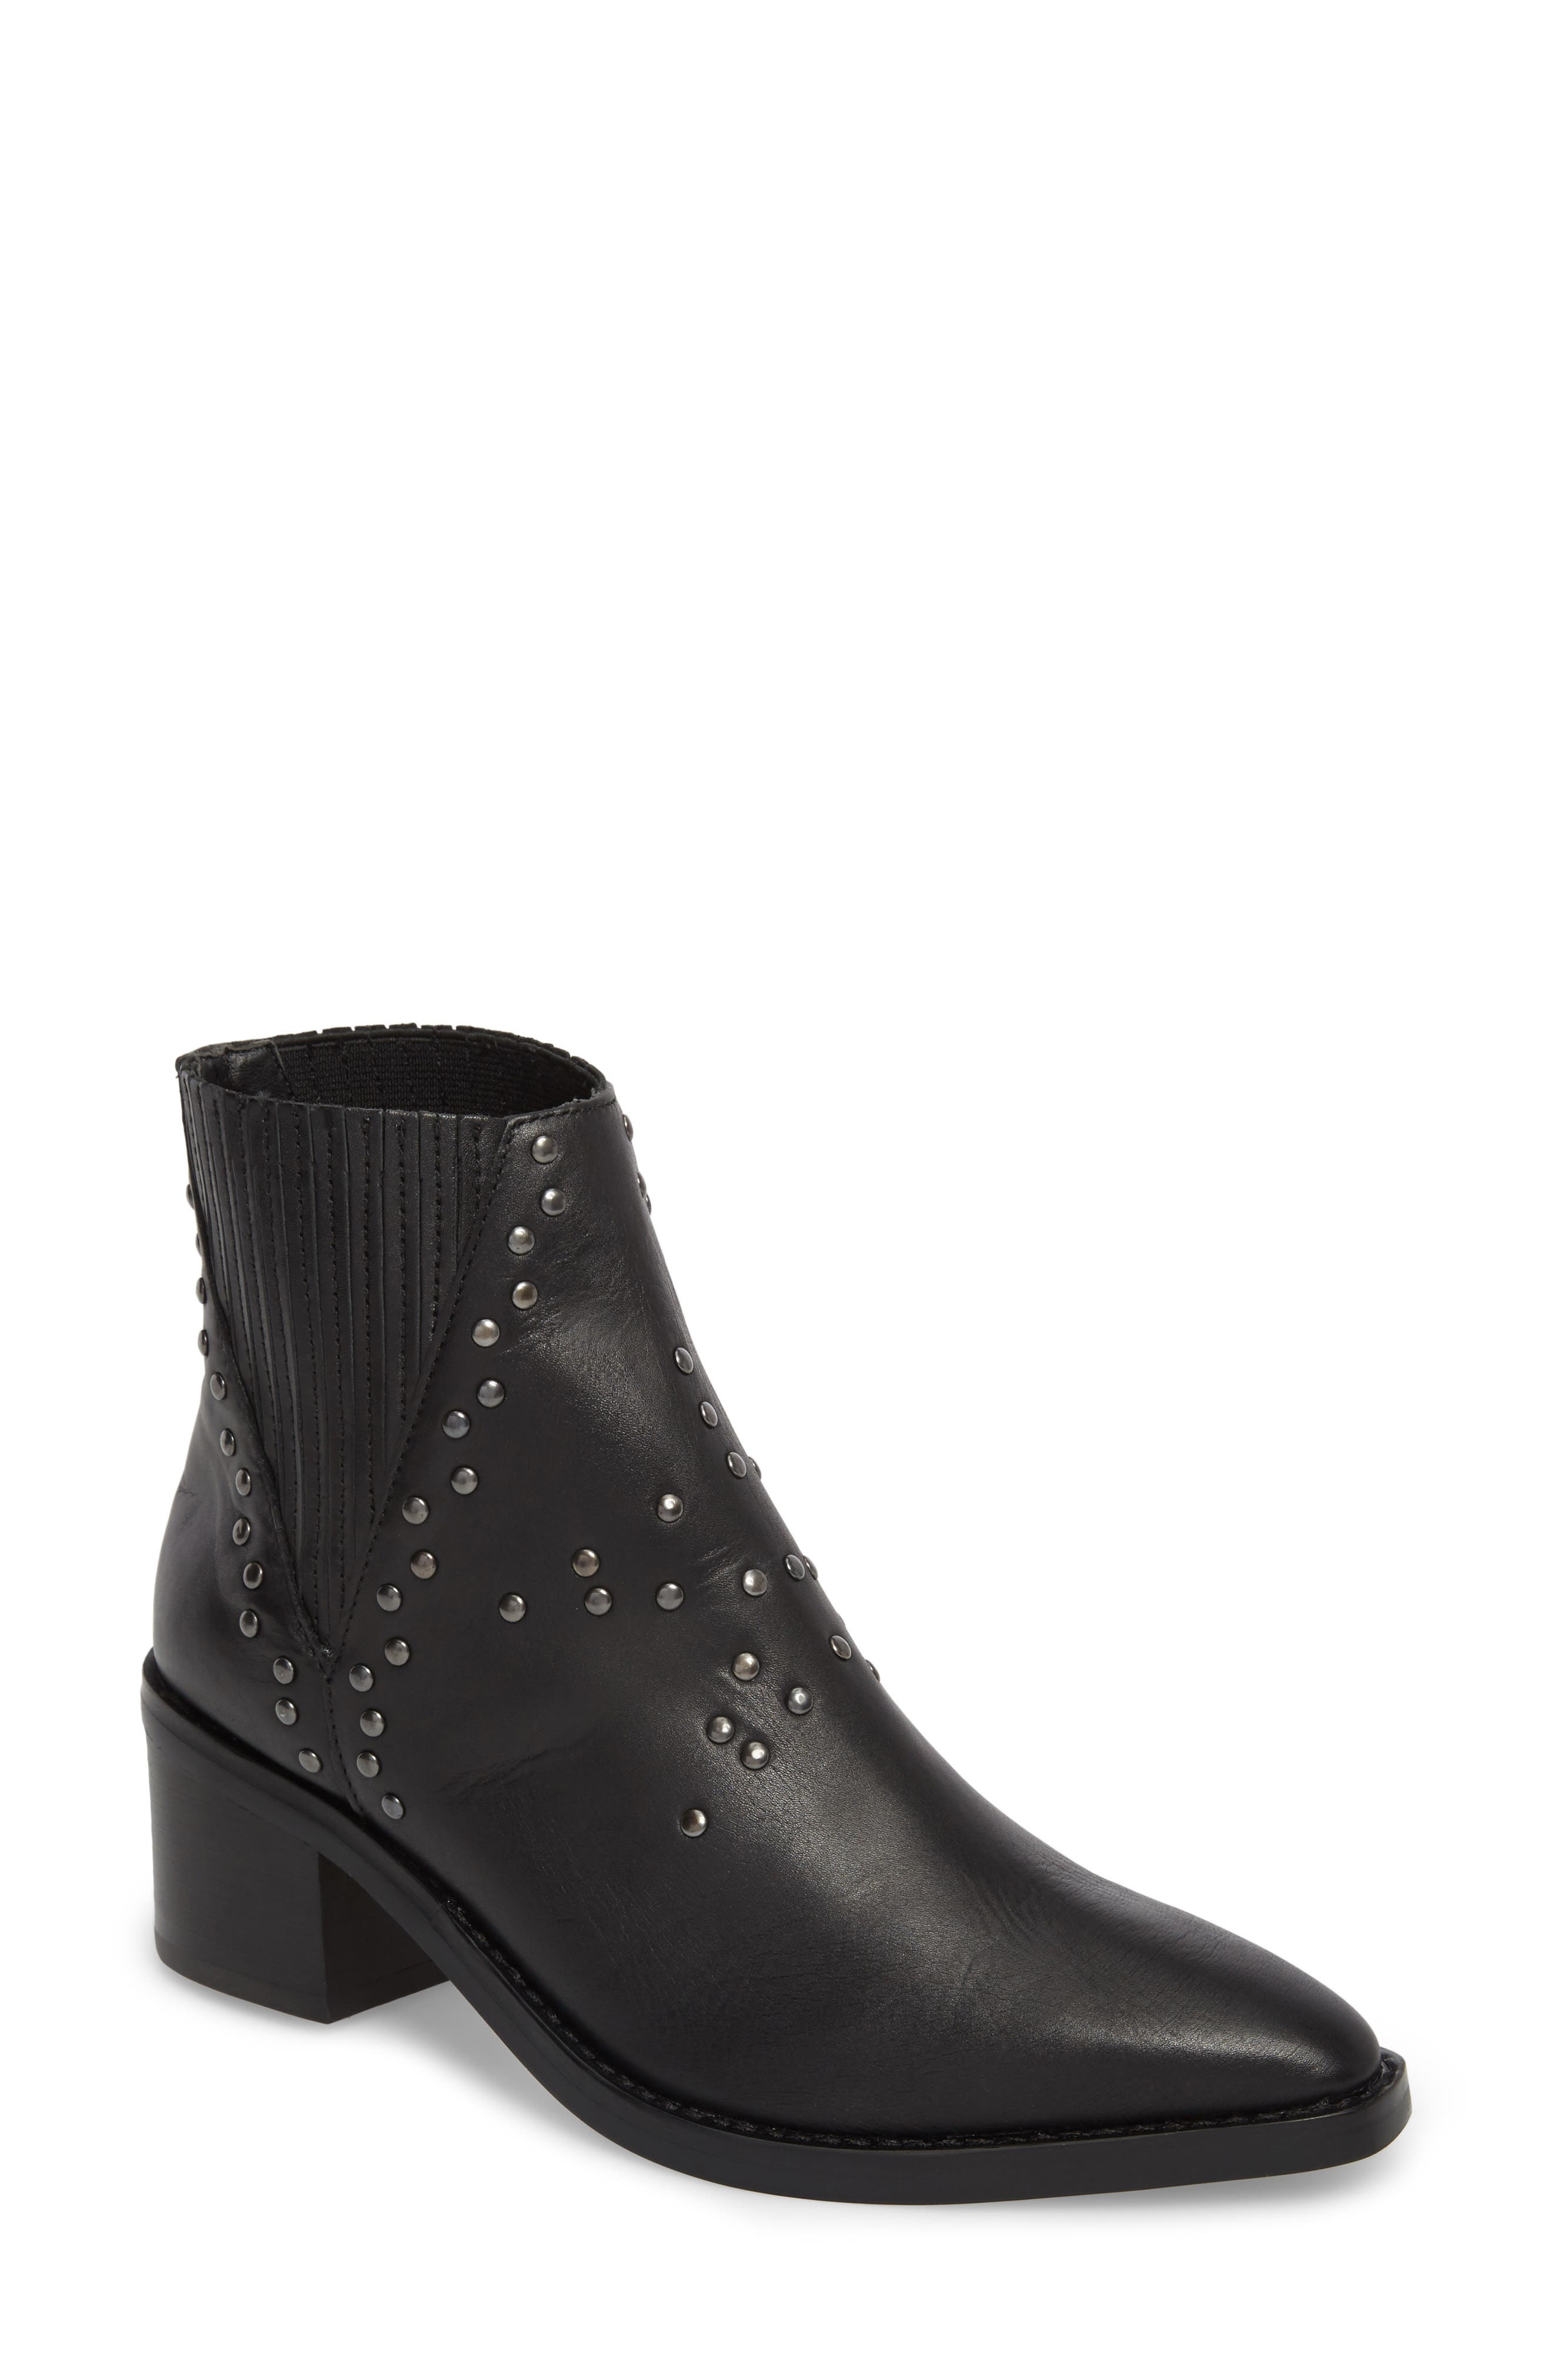 Simbai Western Boot,                         Main,                         color, BLACK ALBANY LEATHER